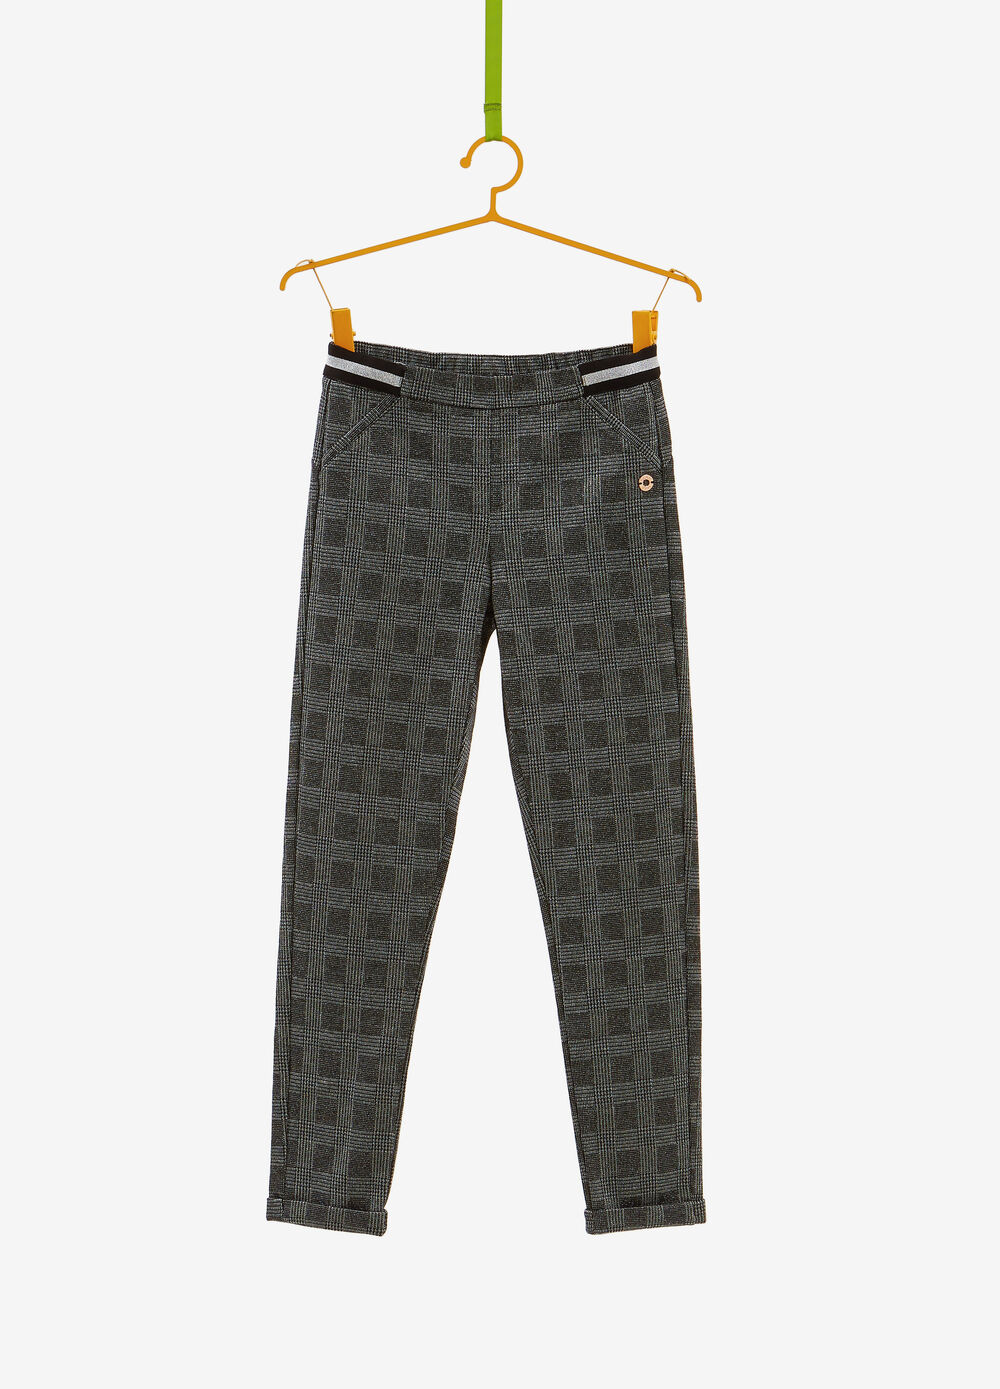 Viscose blend trousers with patterned lurex